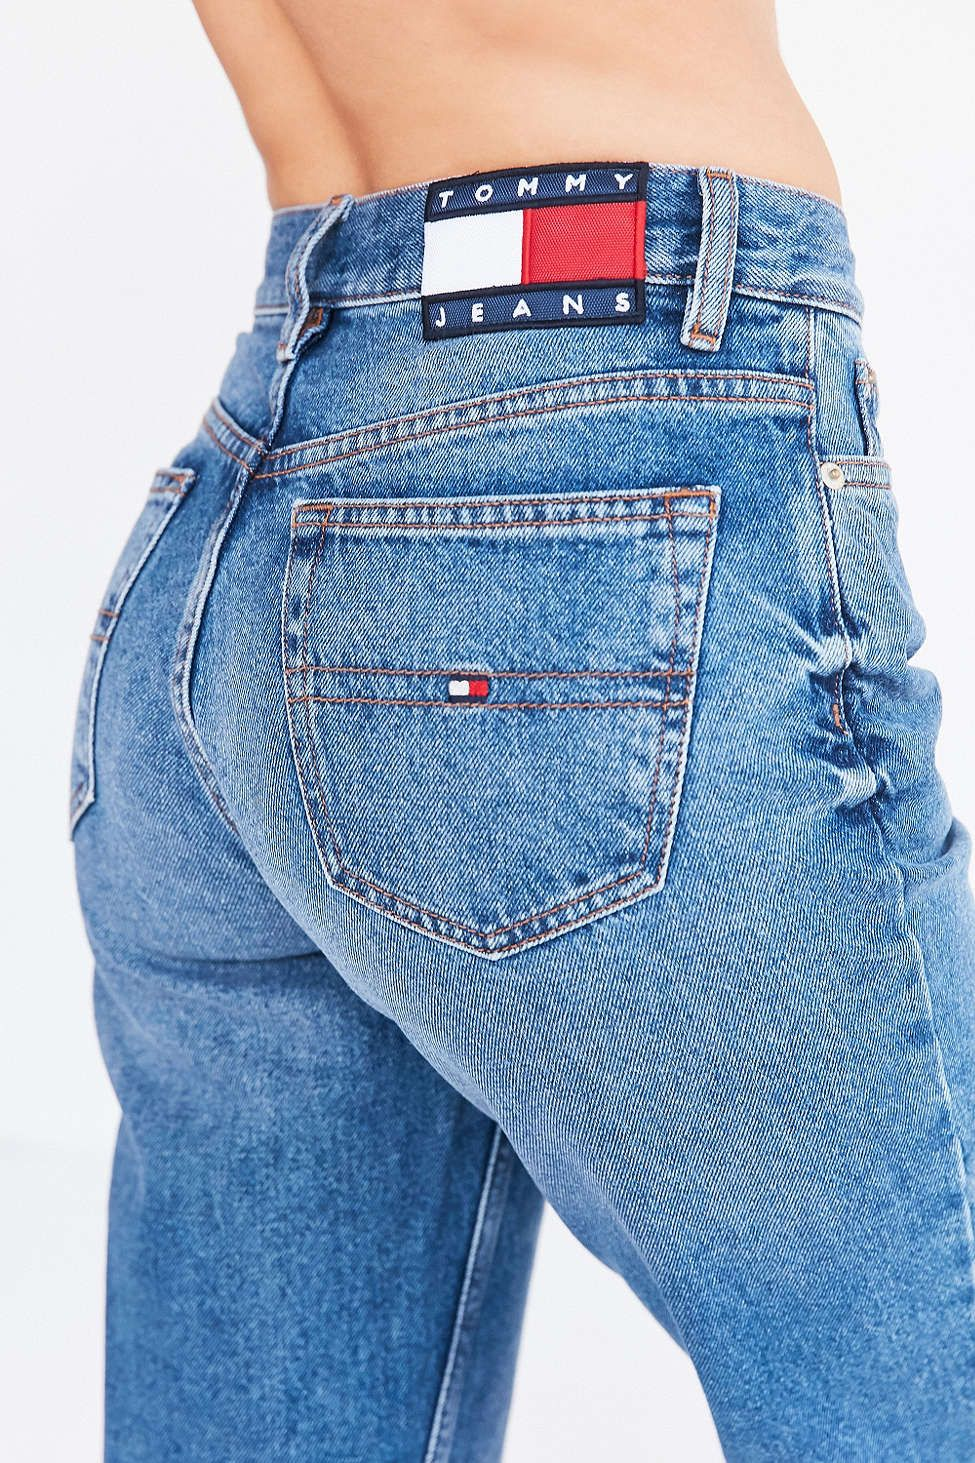 9323c5f9c5648 Tommy Jeans For UO  90s Mid-Rise Mom Jean   Cute Jeans Shorts skirts ...